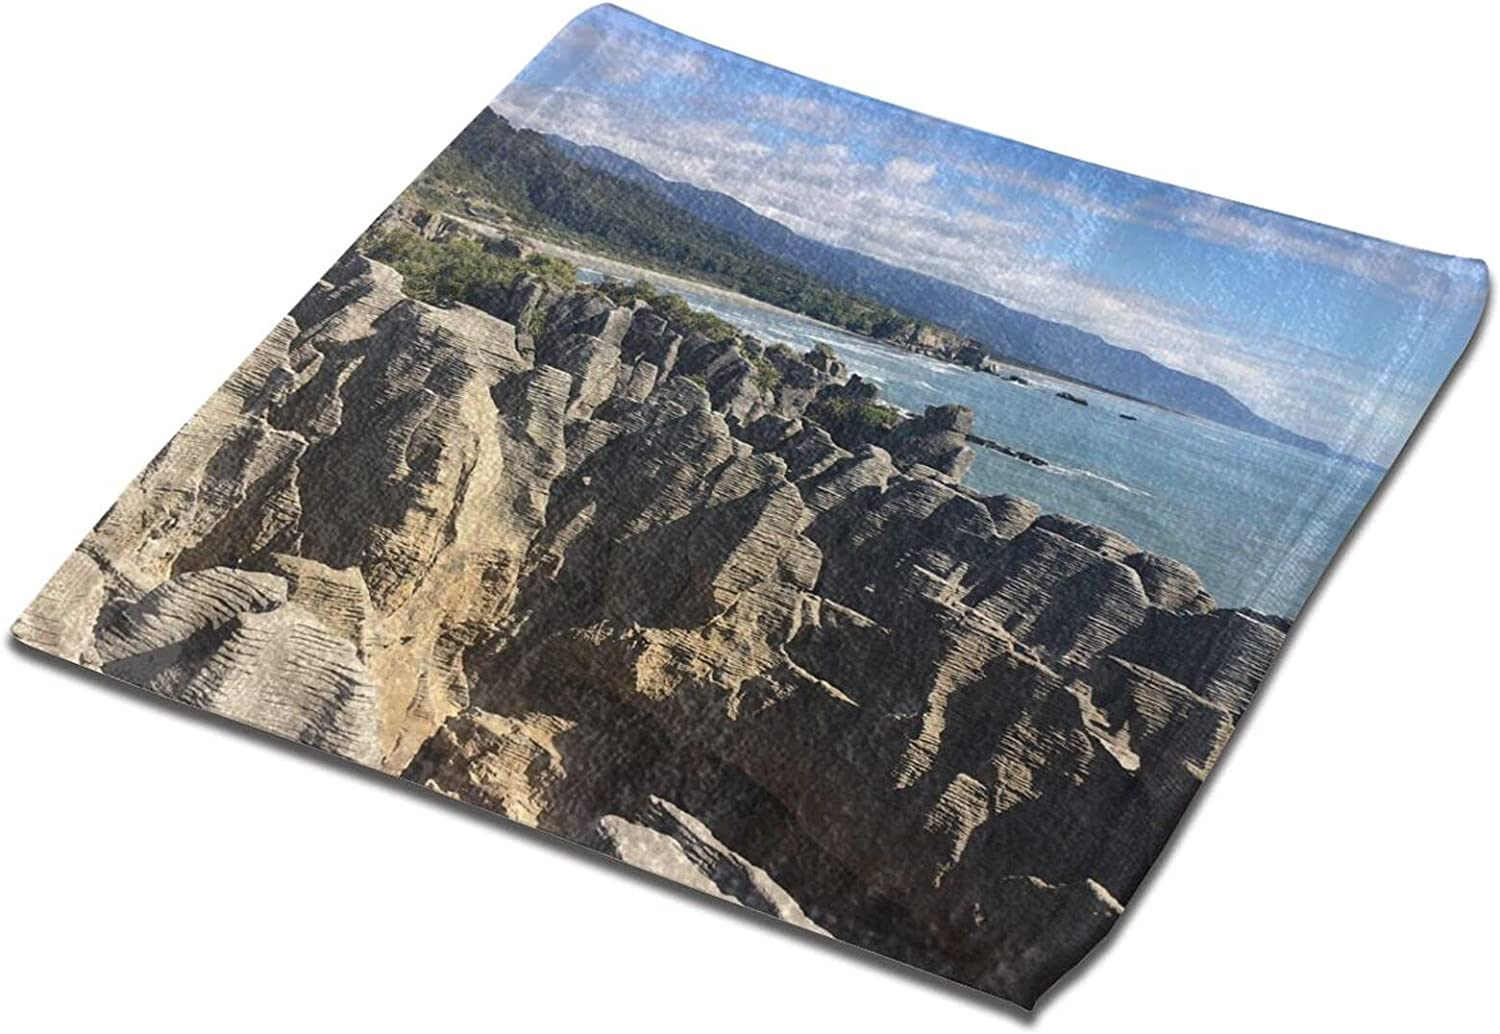 Towels Rocks Scenic Printed Hand Tow Absorbent Ultra Max 67% OFF Face 4 years warranty